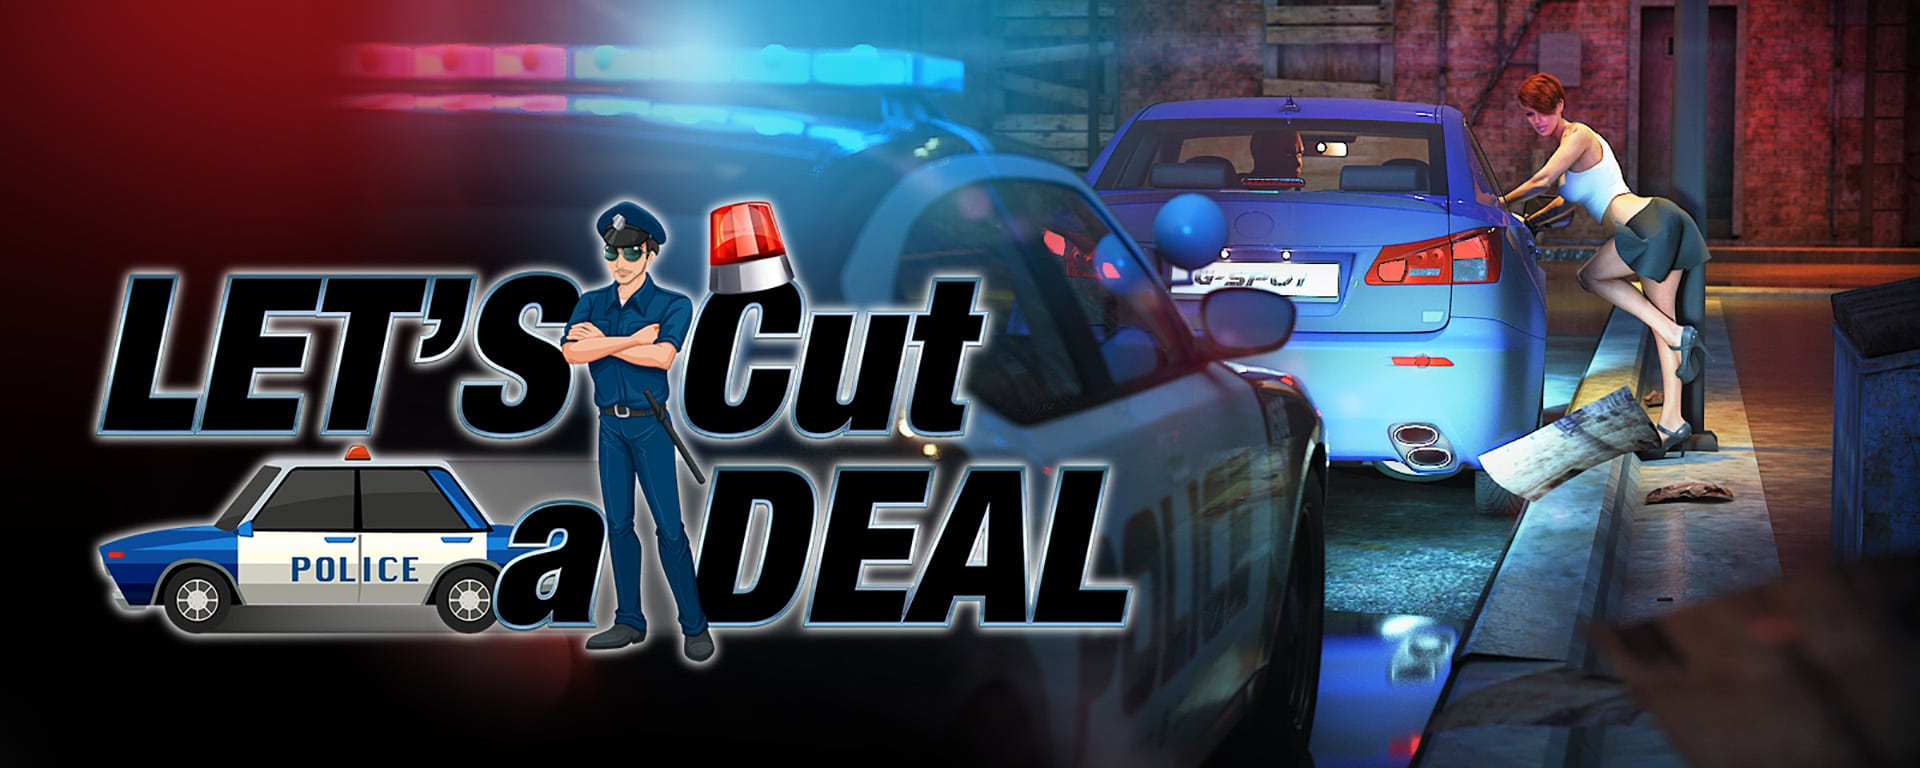 Lets Cut the Deal - Adult Game Pass